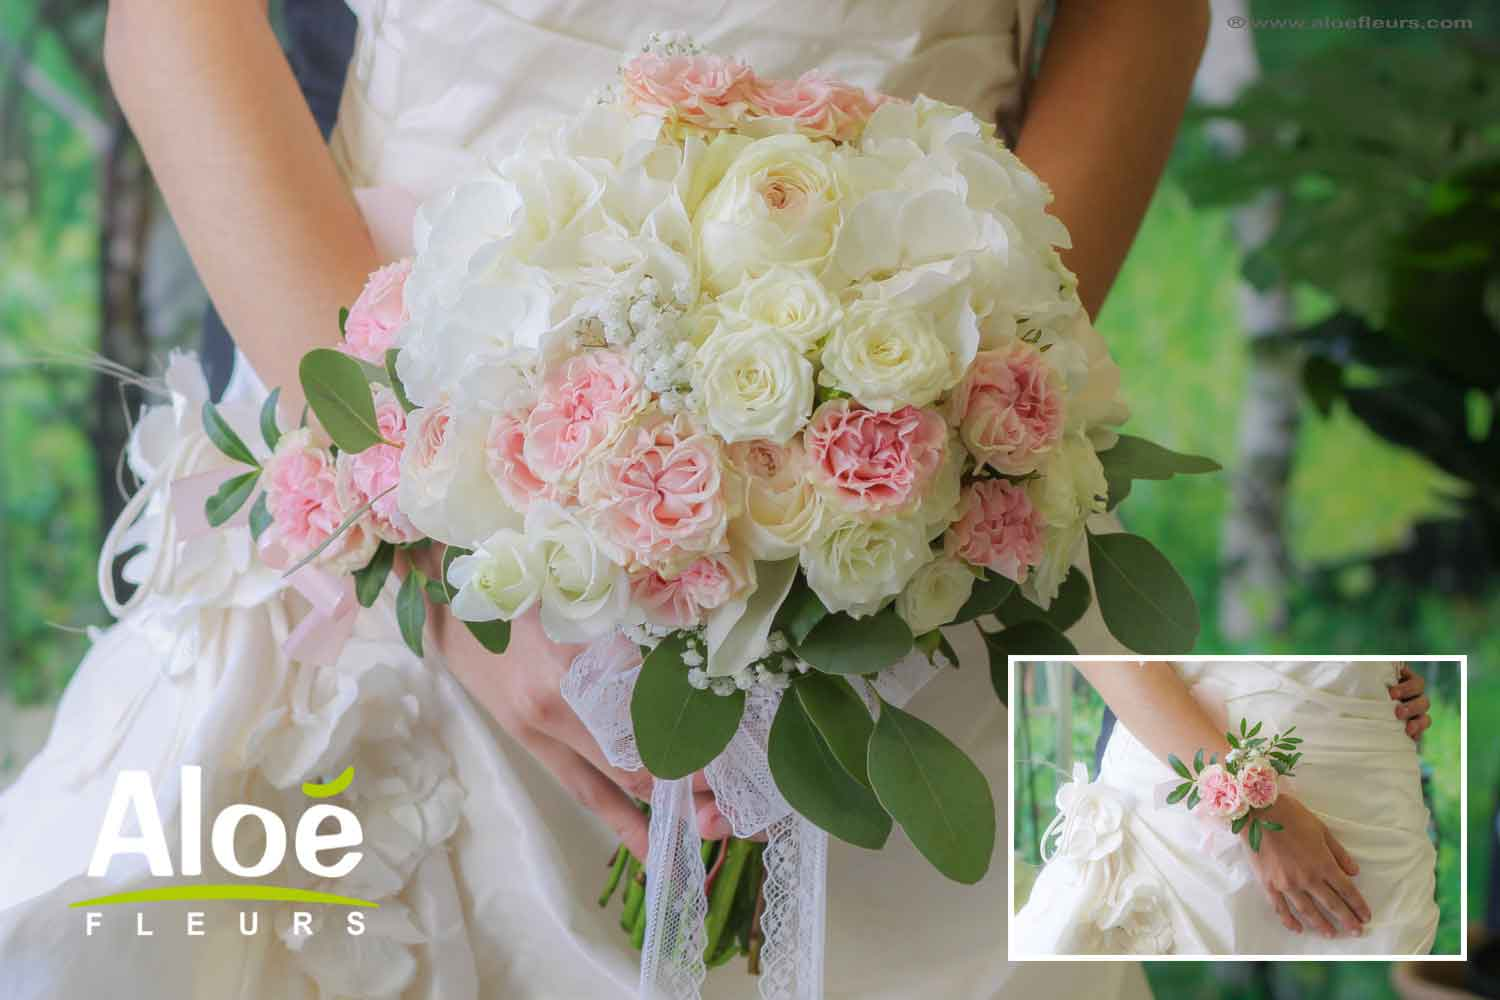 Arche Florale Mariage Burghof Forbach Moselle Mariage 00017 Copy